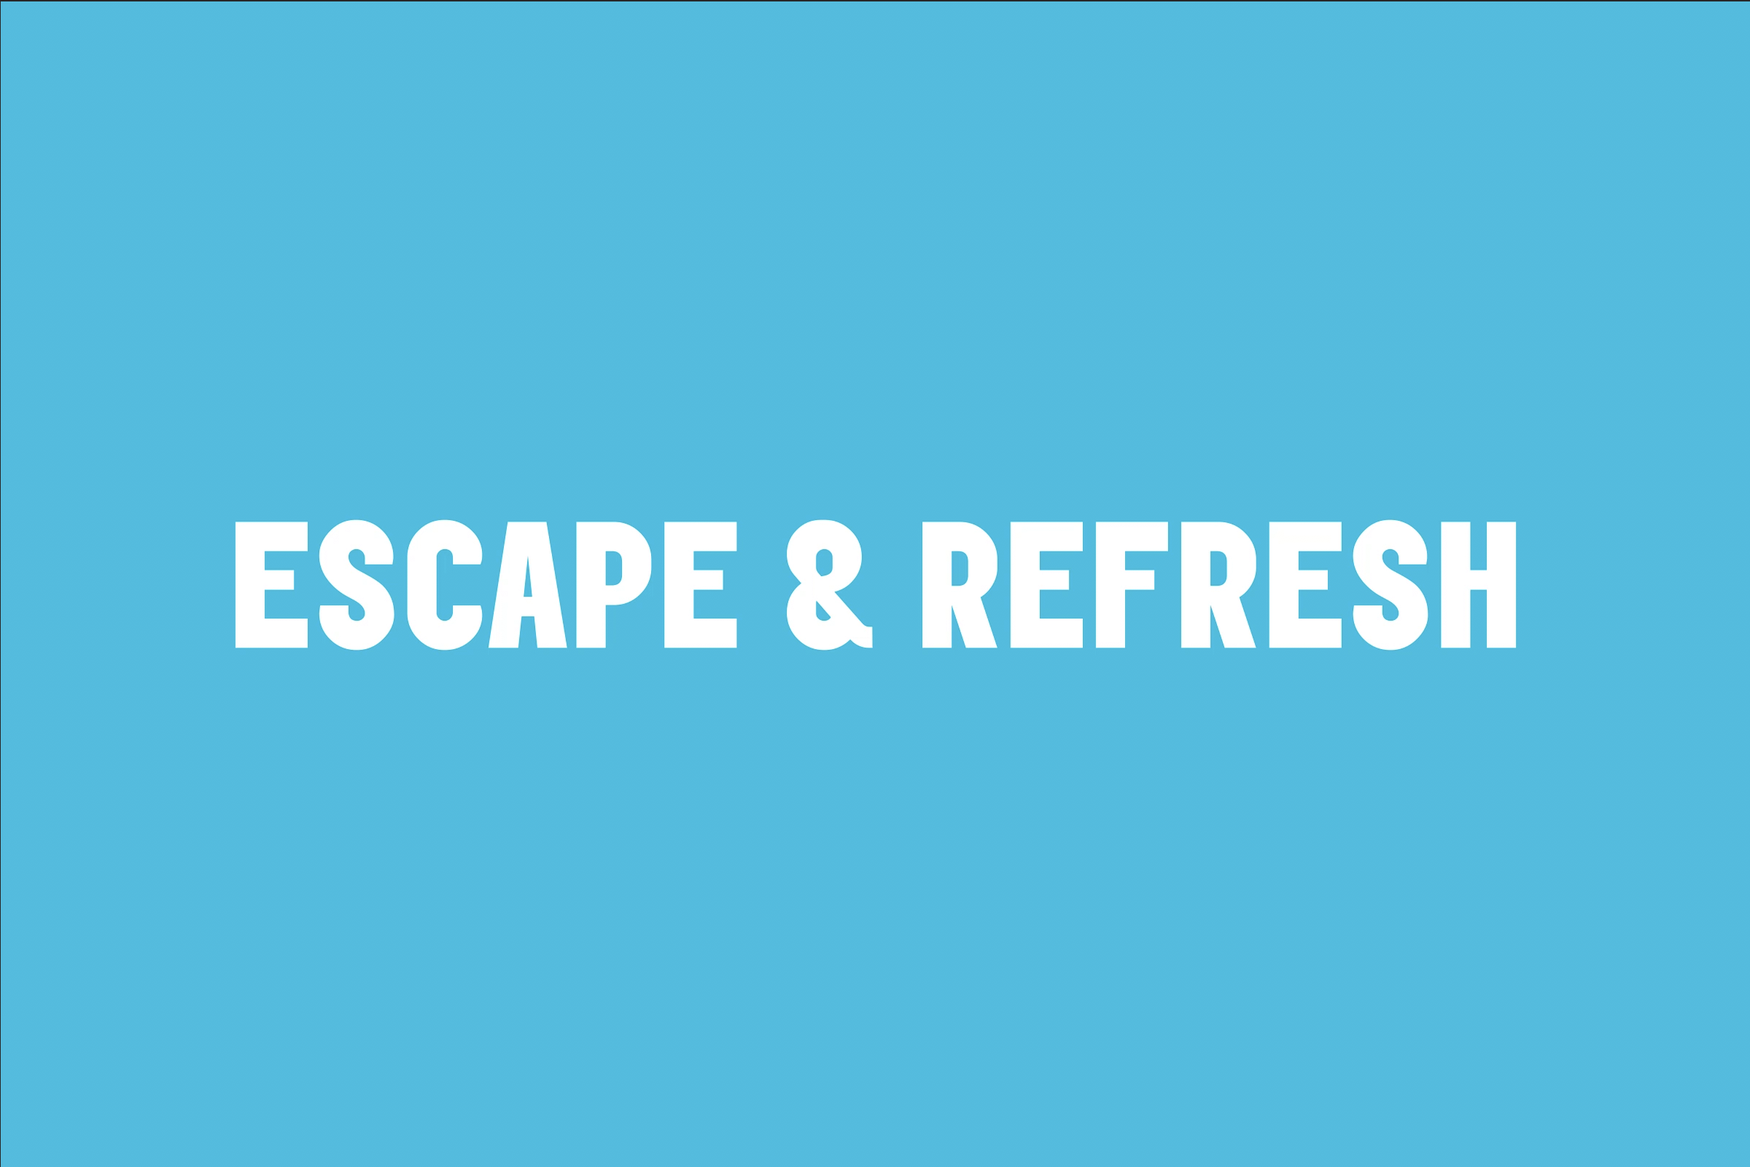 Escape & Refresh